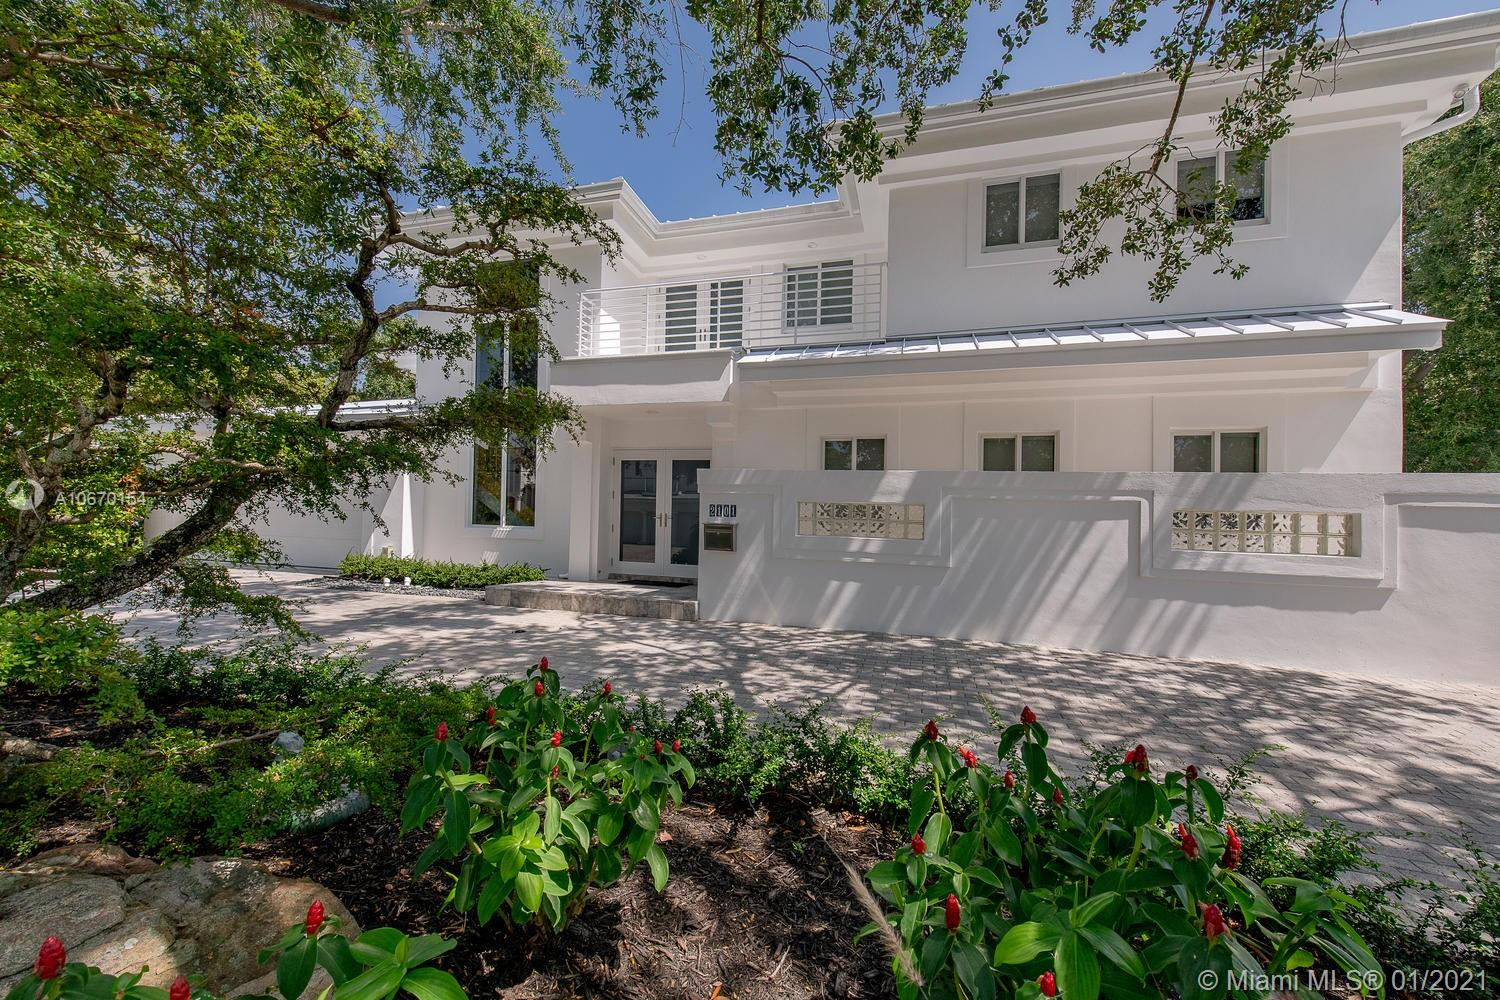 Contemporary waterfront home in the island community of Sunrise Key w/ gated automatic entry & security patrol. Home underwent a down to the studs renovation.  An entertainer's delight the home sits on an over-sized 13,084 sq/ft lot w/ unobstructed water views from every room. Vast landscaped grounds include a basketball court, private dock & over 3,500 sq/ft of patio areas all gated & fenced. The bright & spacious interior features multiple entertaining areas,  5 bedrms, 5 full bathrms & bonus rm.  Large master wing offers over 600 sq/ft w/ waterside balcony, sitting area, his & hers bath rooms, his & her closets. The perfect family home seamlessly blends indoor & outdoor living.   Private & secluded neighborhood near downtown, beaches, shops and ocean access with no fixed bridges.